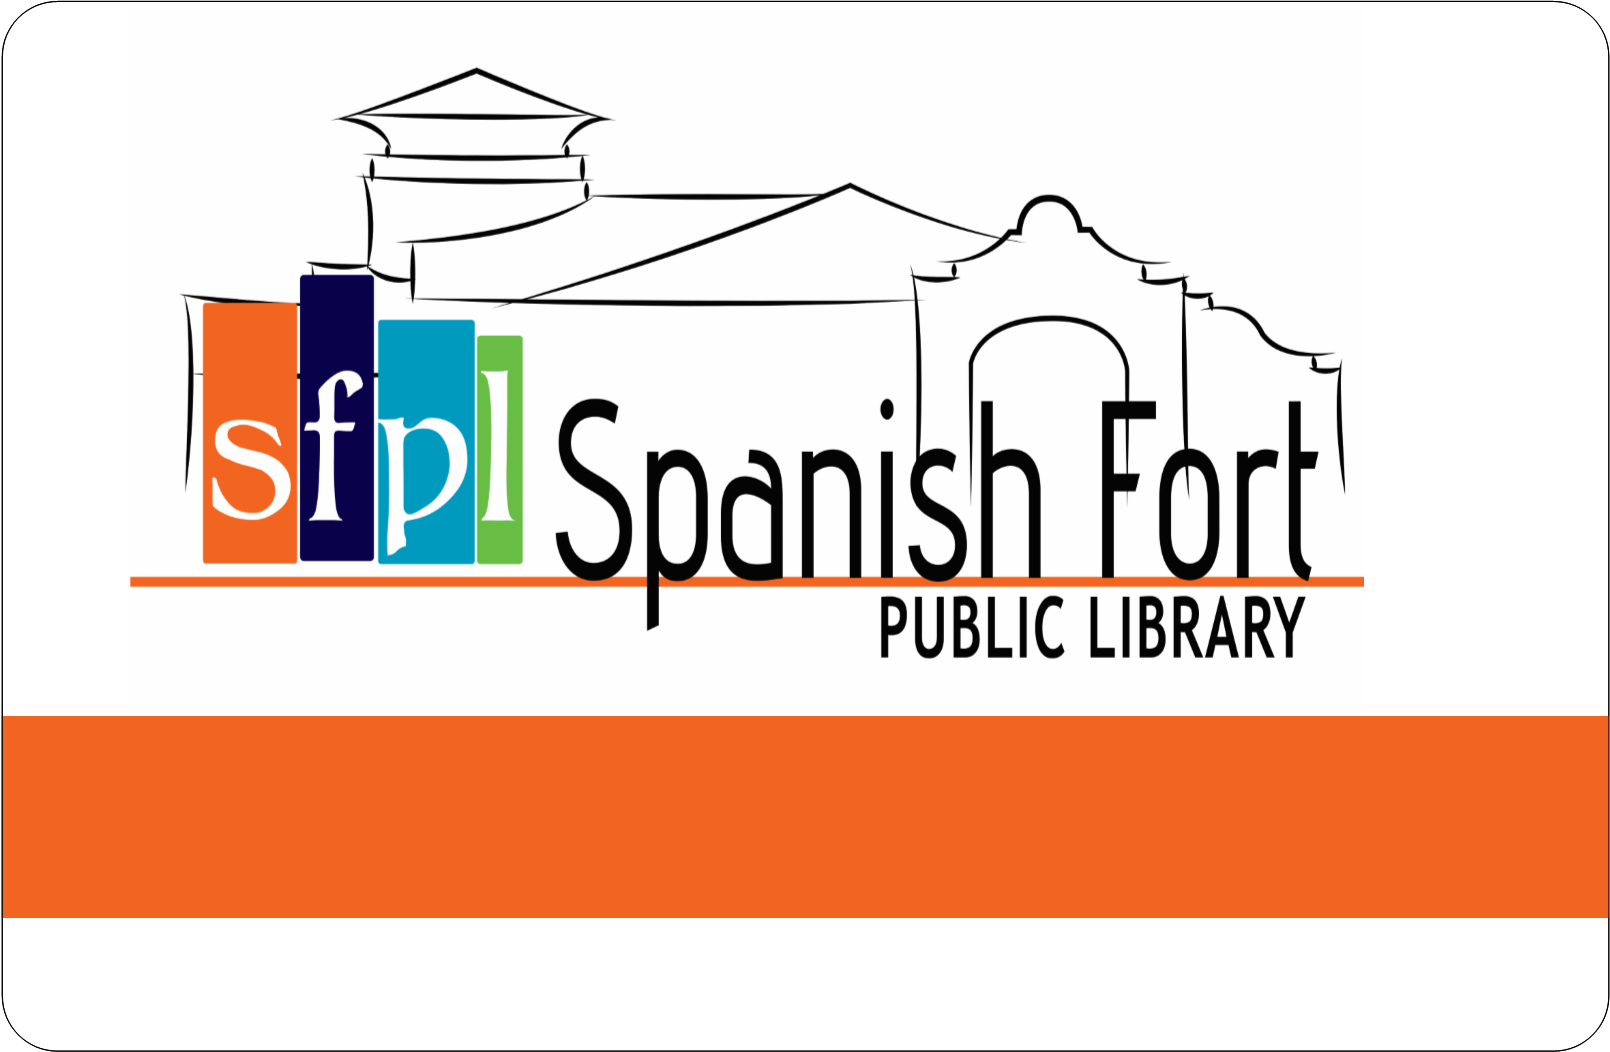 Spanish Fort Public Library library card